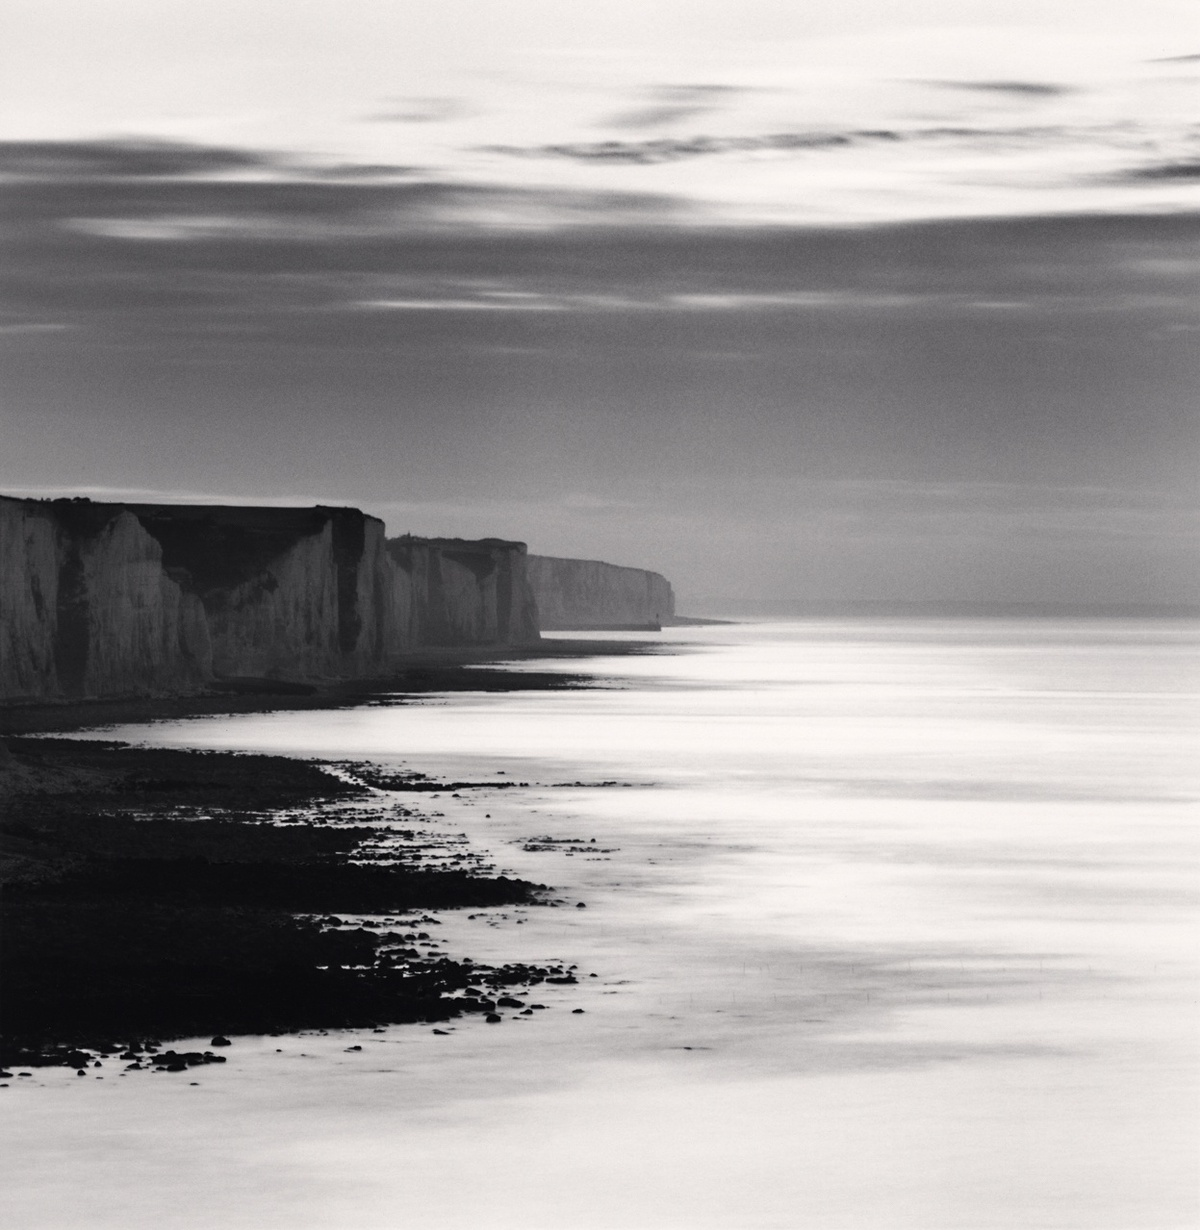 Michael Kenna Ault Cliffs, Study 1, Picardy, France 2009 Sepia Toned Silver Gelatin Print From An Edition Of 45 8 x 8 Inches